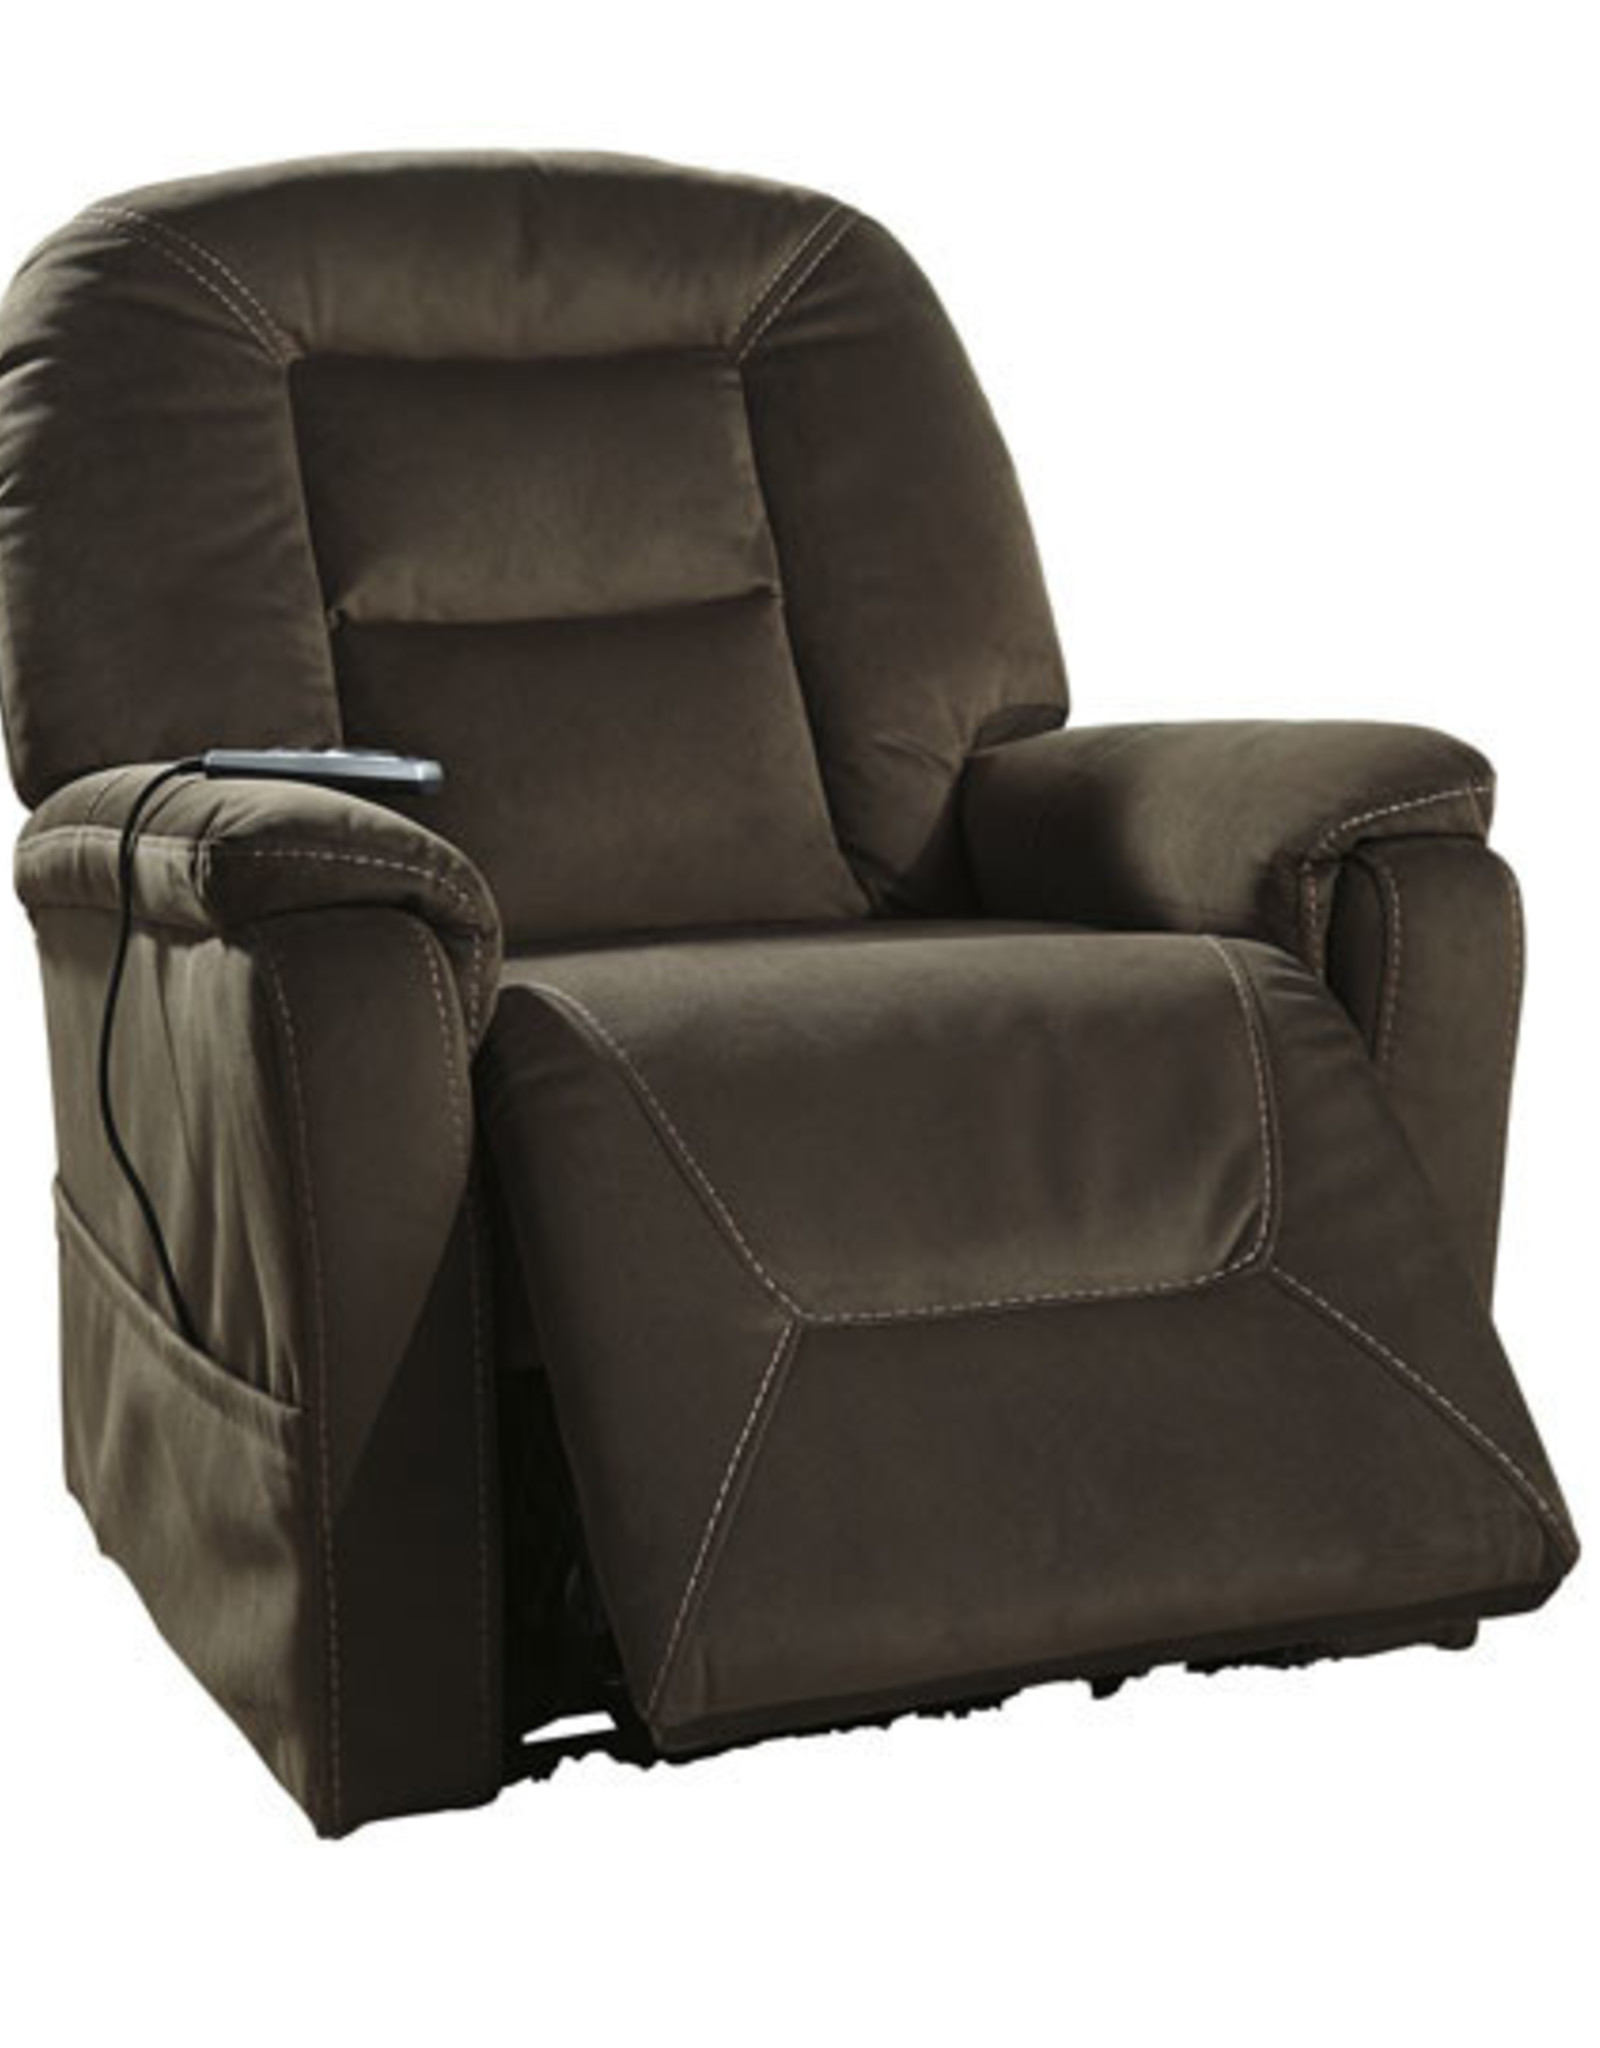 Samir Power Lift Recliner - Online Only